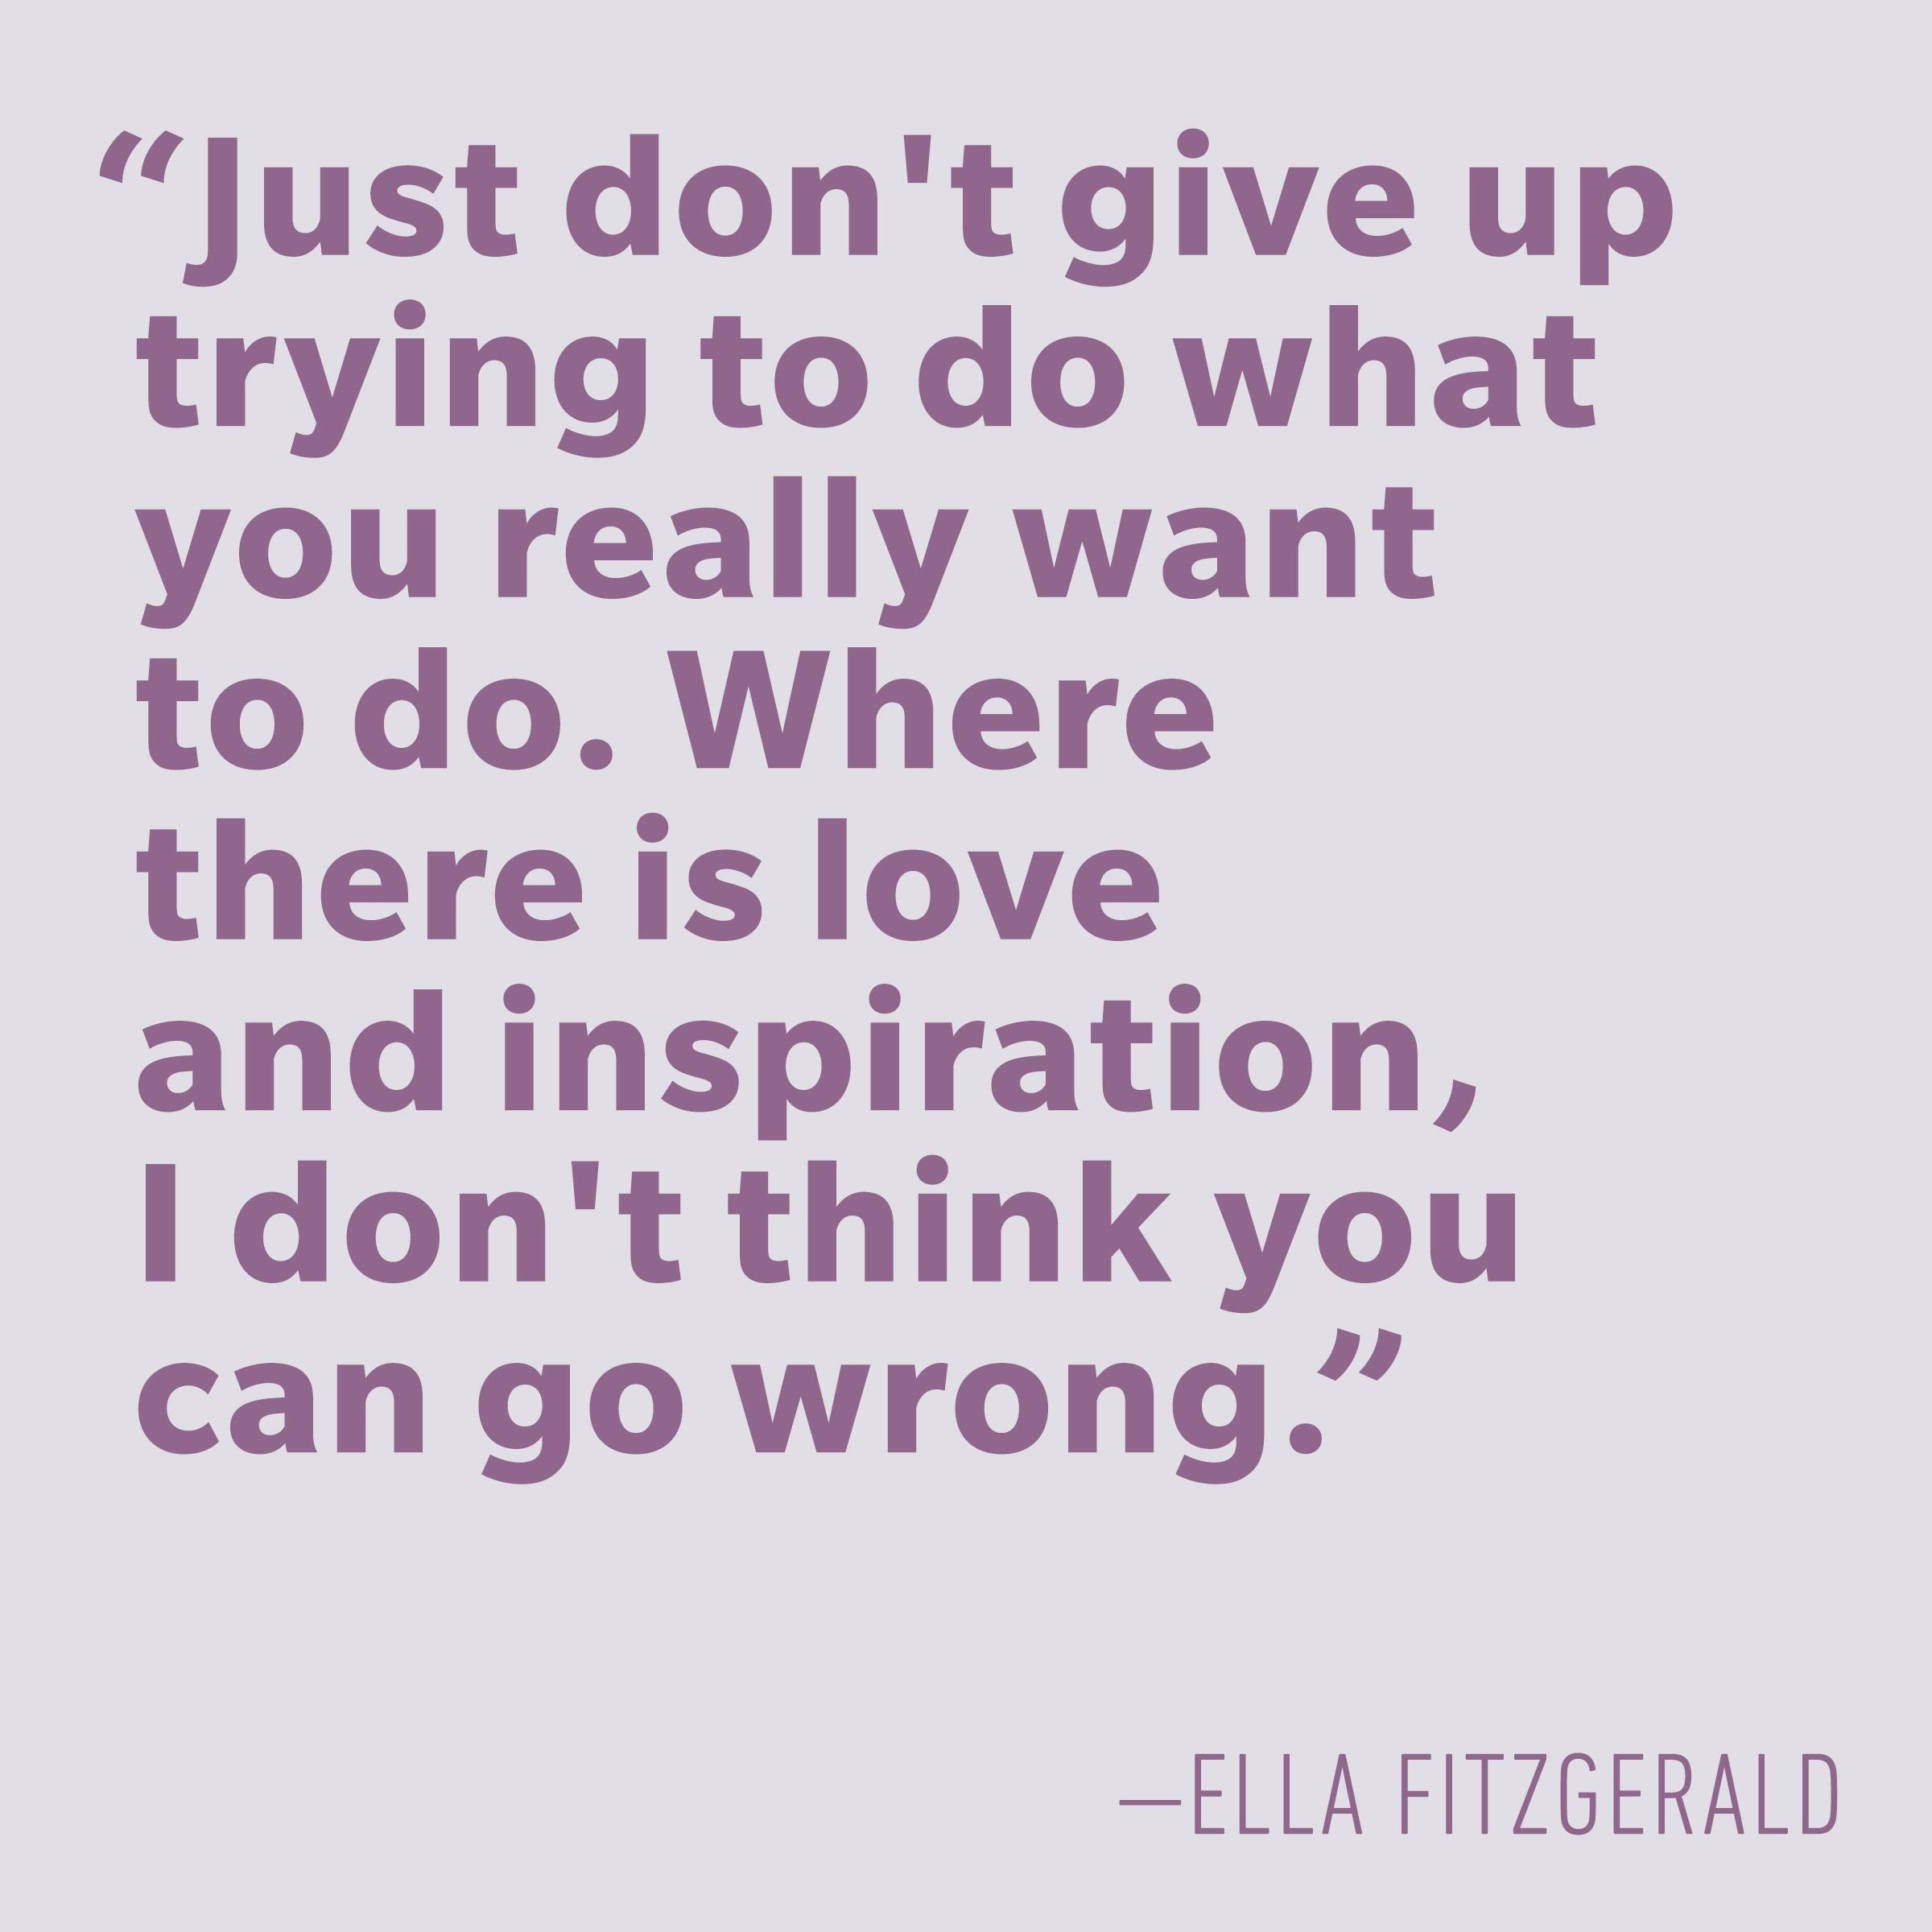 Motivational quotes, inspirational quotes, positive quotes, uplifting quotes